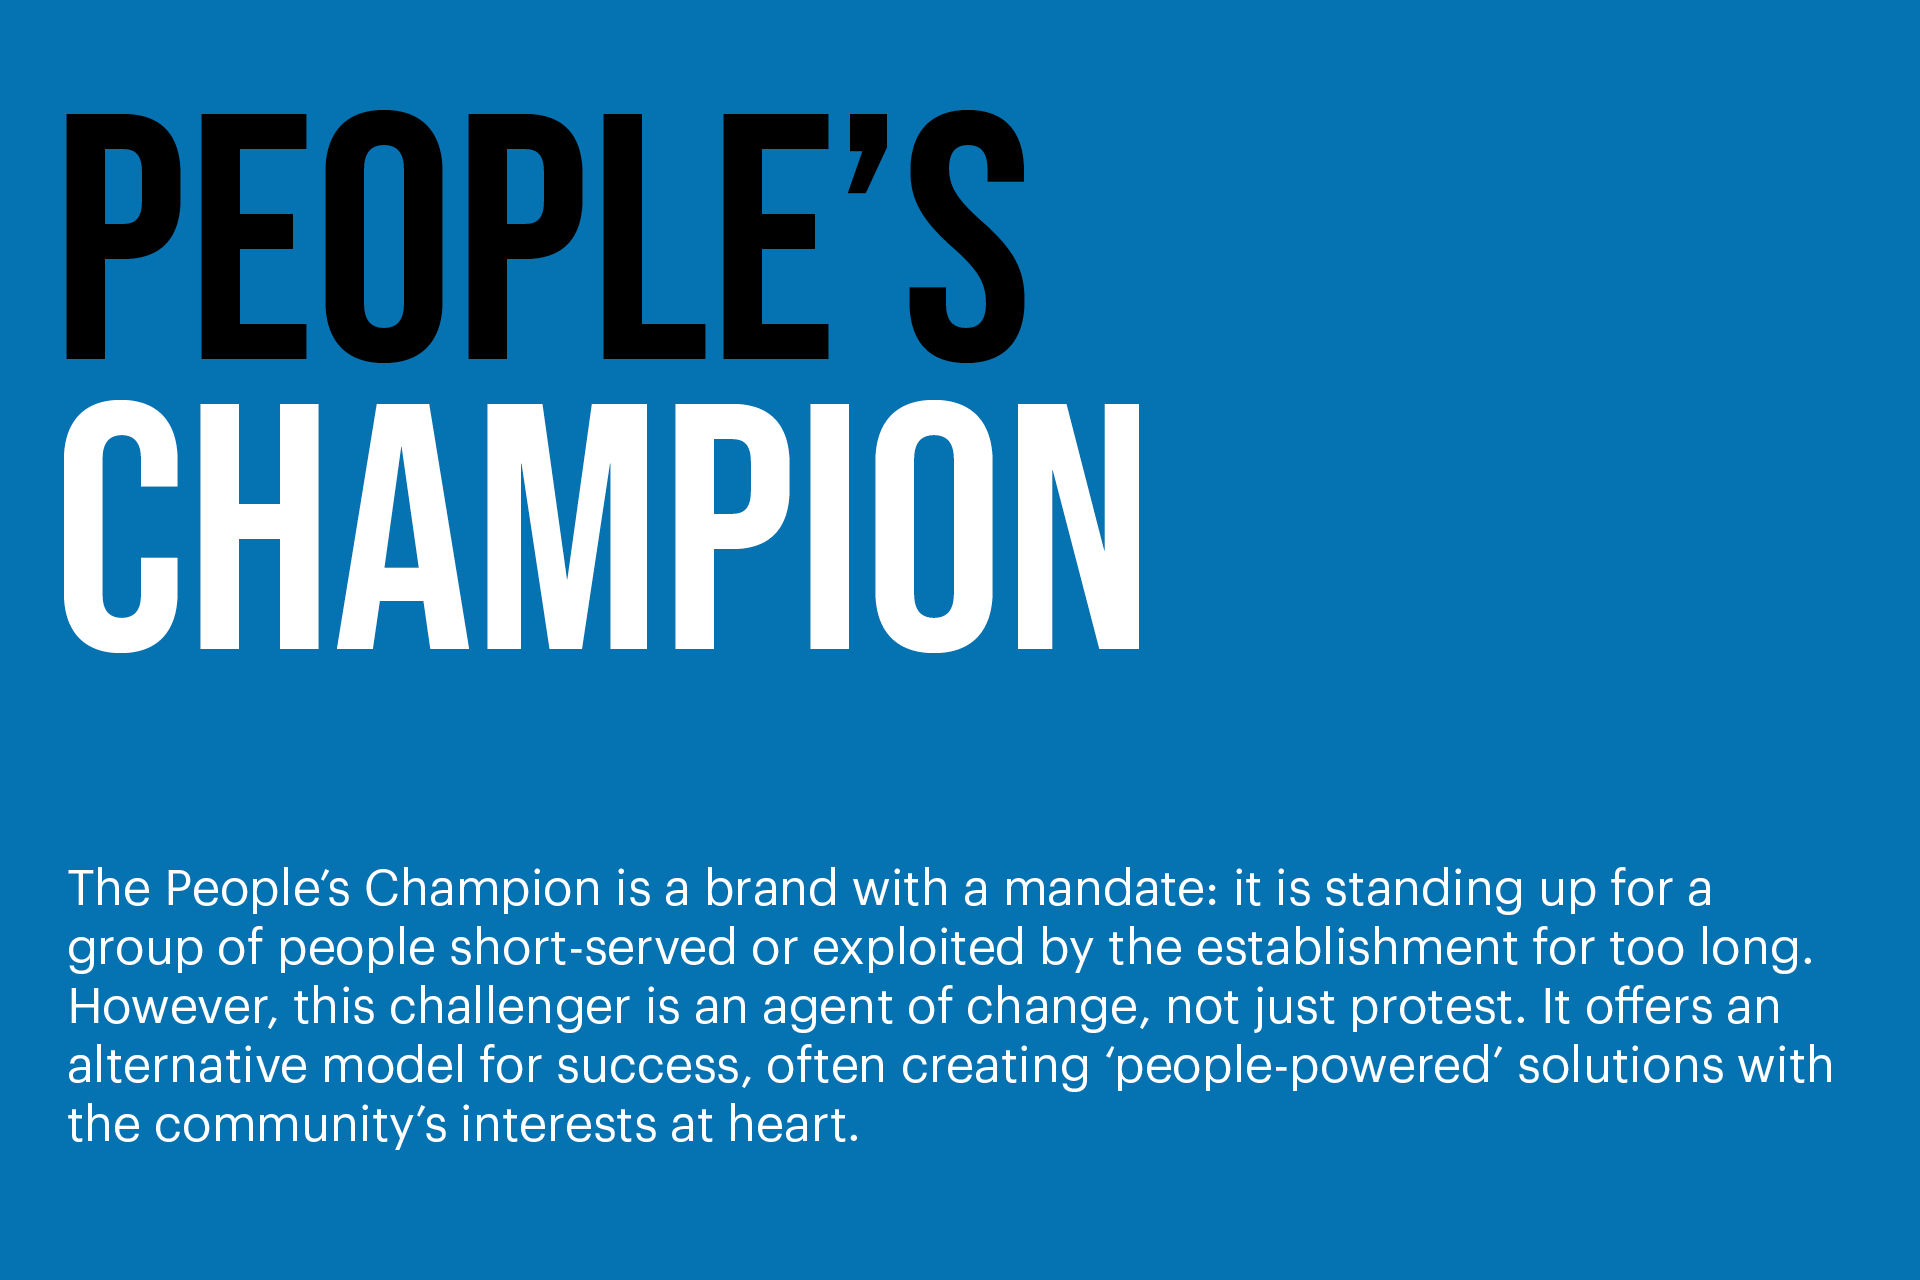 People's Champion.png